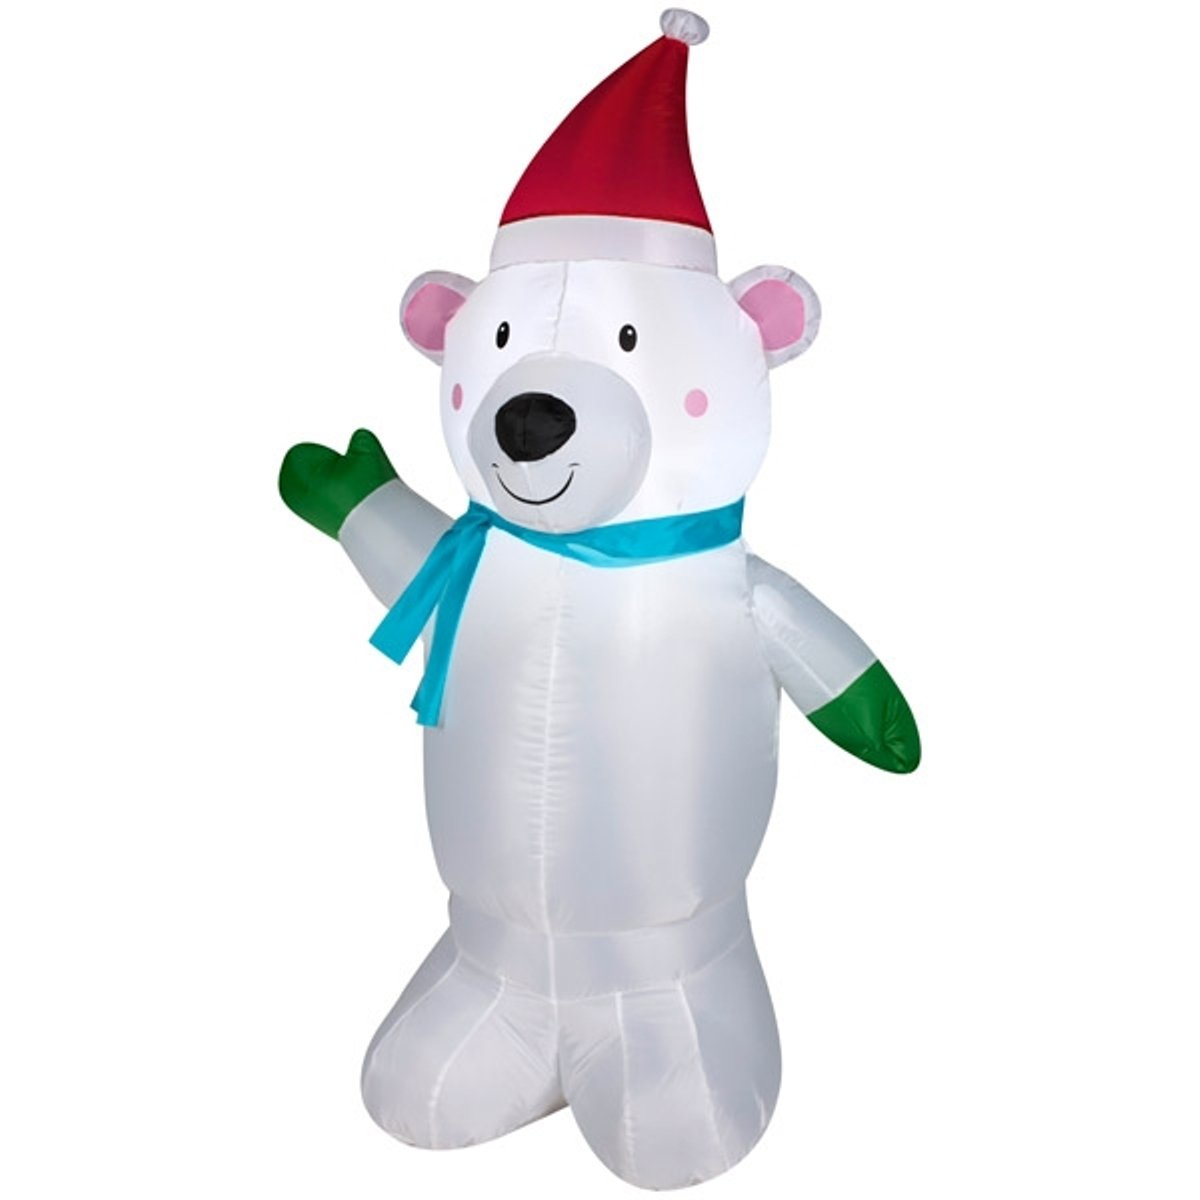 amazoncom gemmy airblown inflatable polar bear wearing santa hat green mittens and a blue scarf holiday indoor outdoor decoration 4 feet tall garden - Walmart Inflatable Christmas Decorations